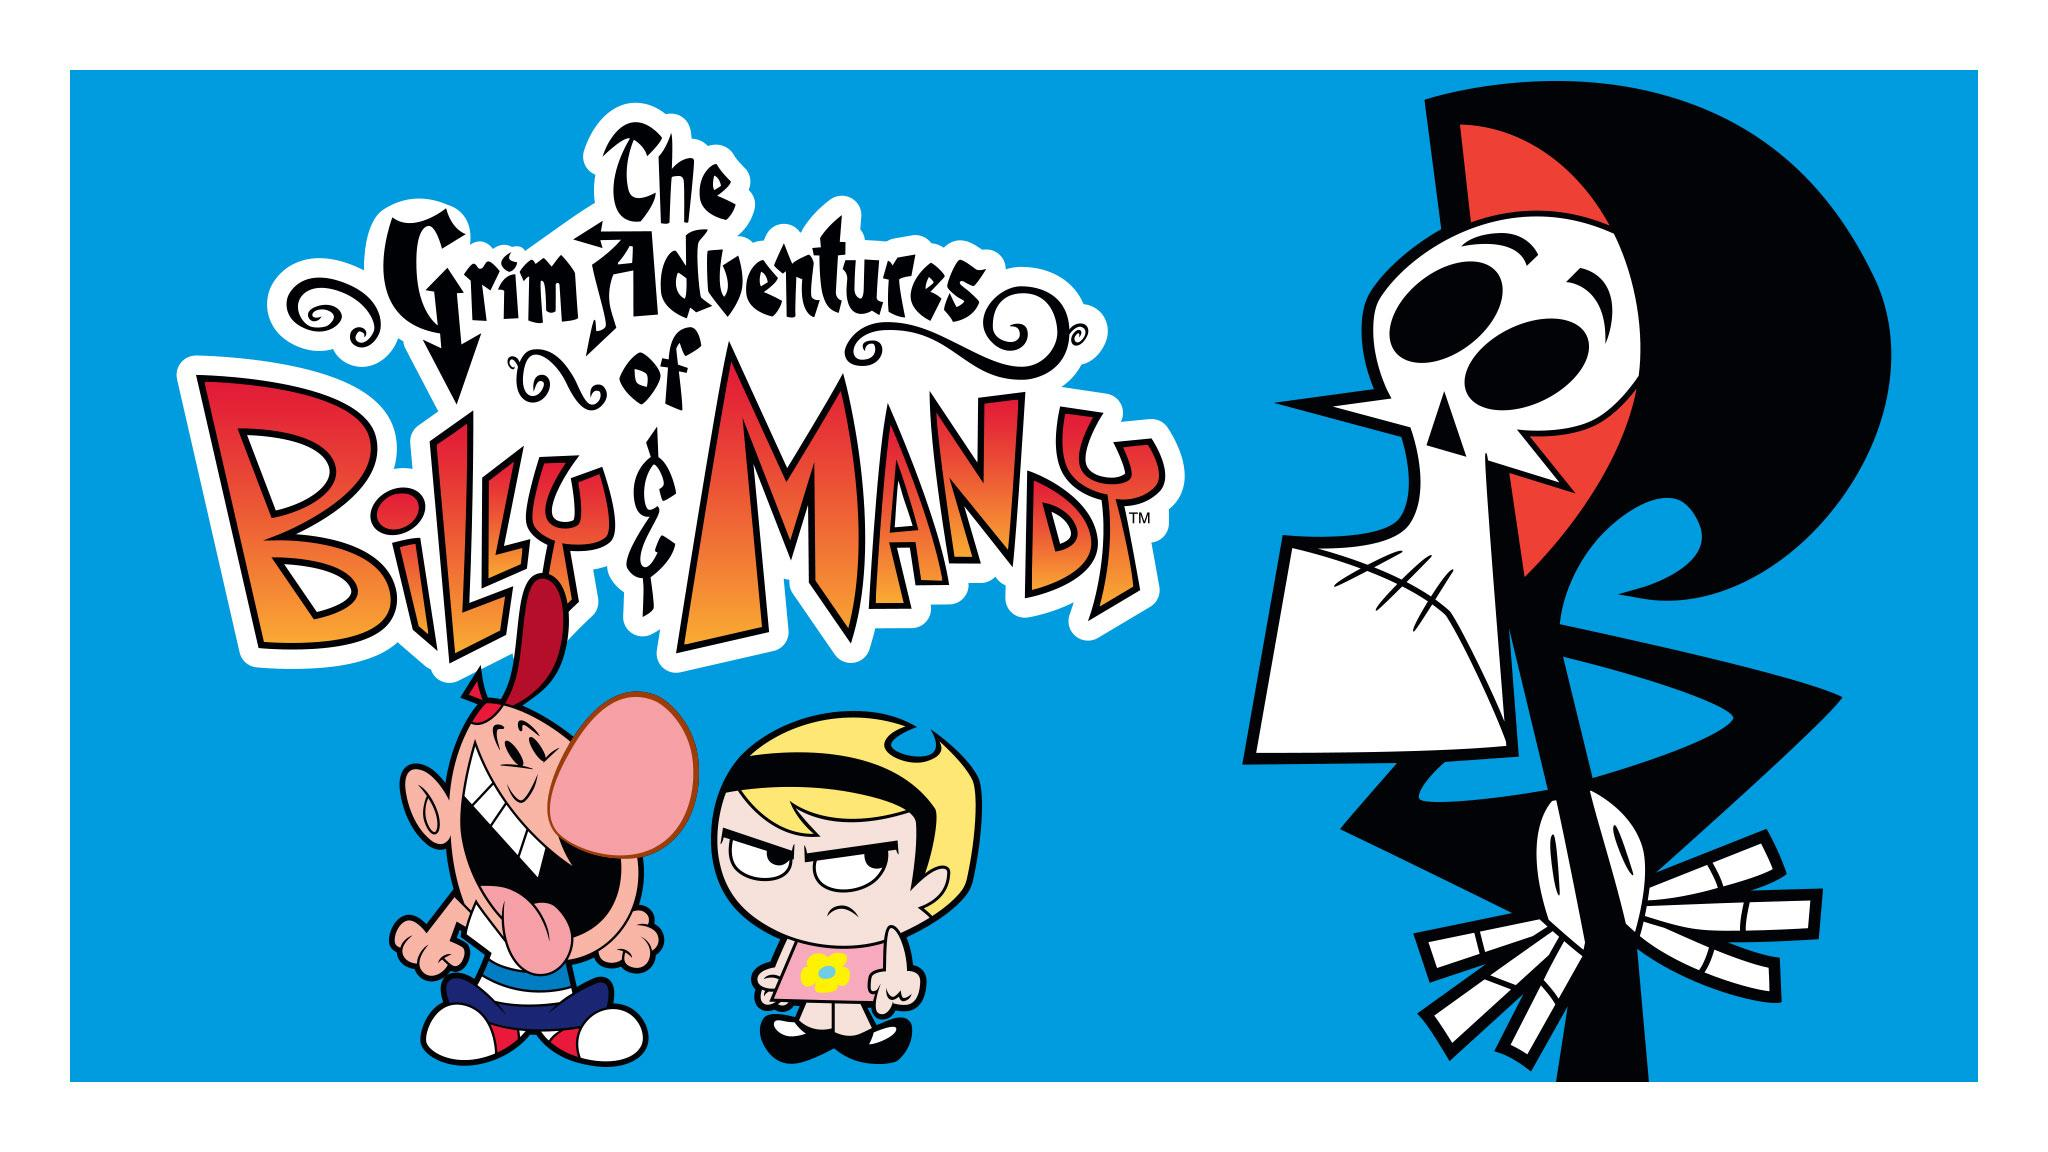 Stream And Watch The Grim Adventures Of Billy Mandy Online